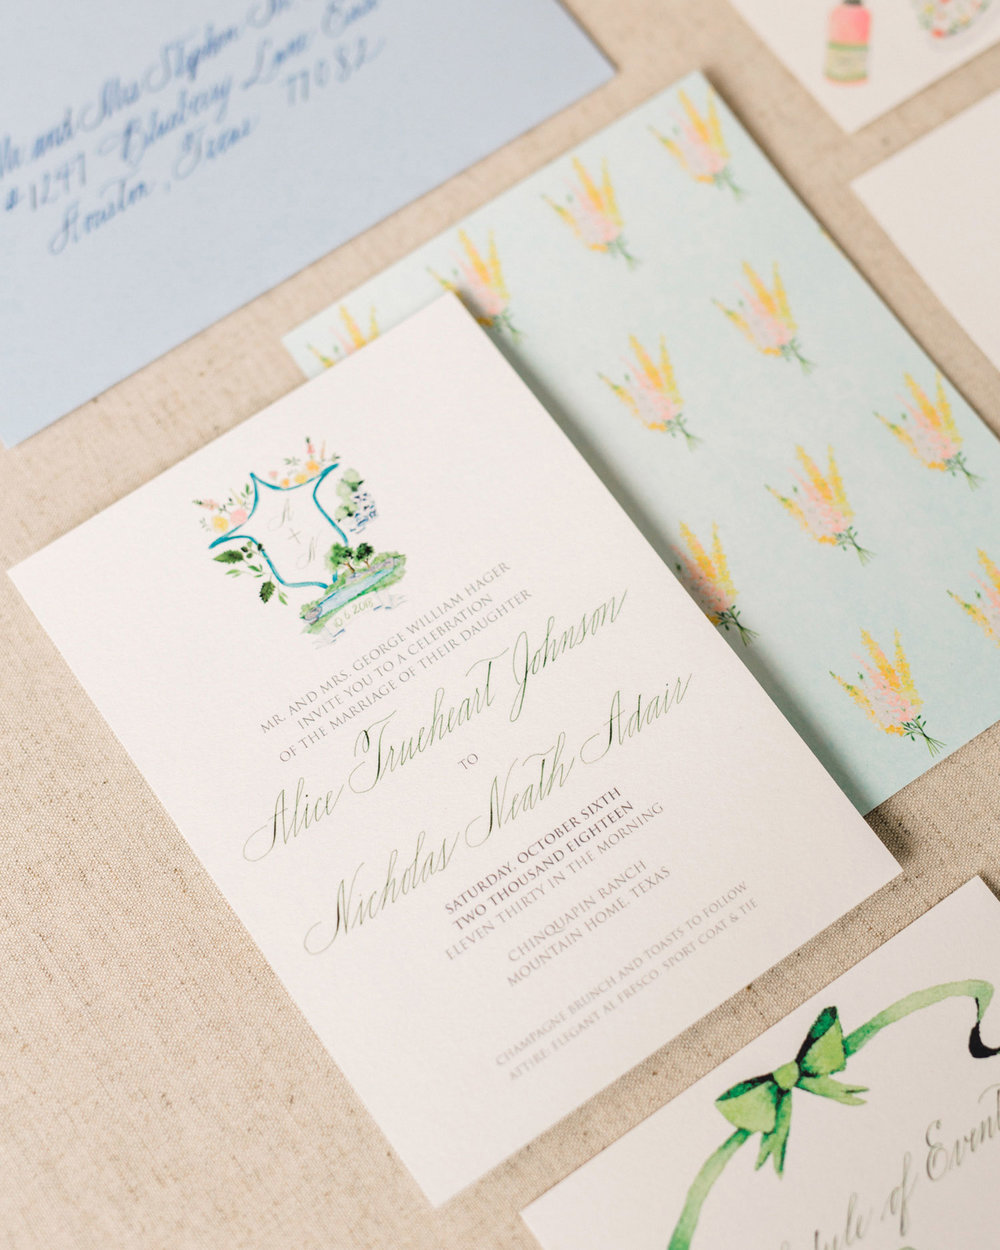 Watercolor wedding stationery 3.JPG